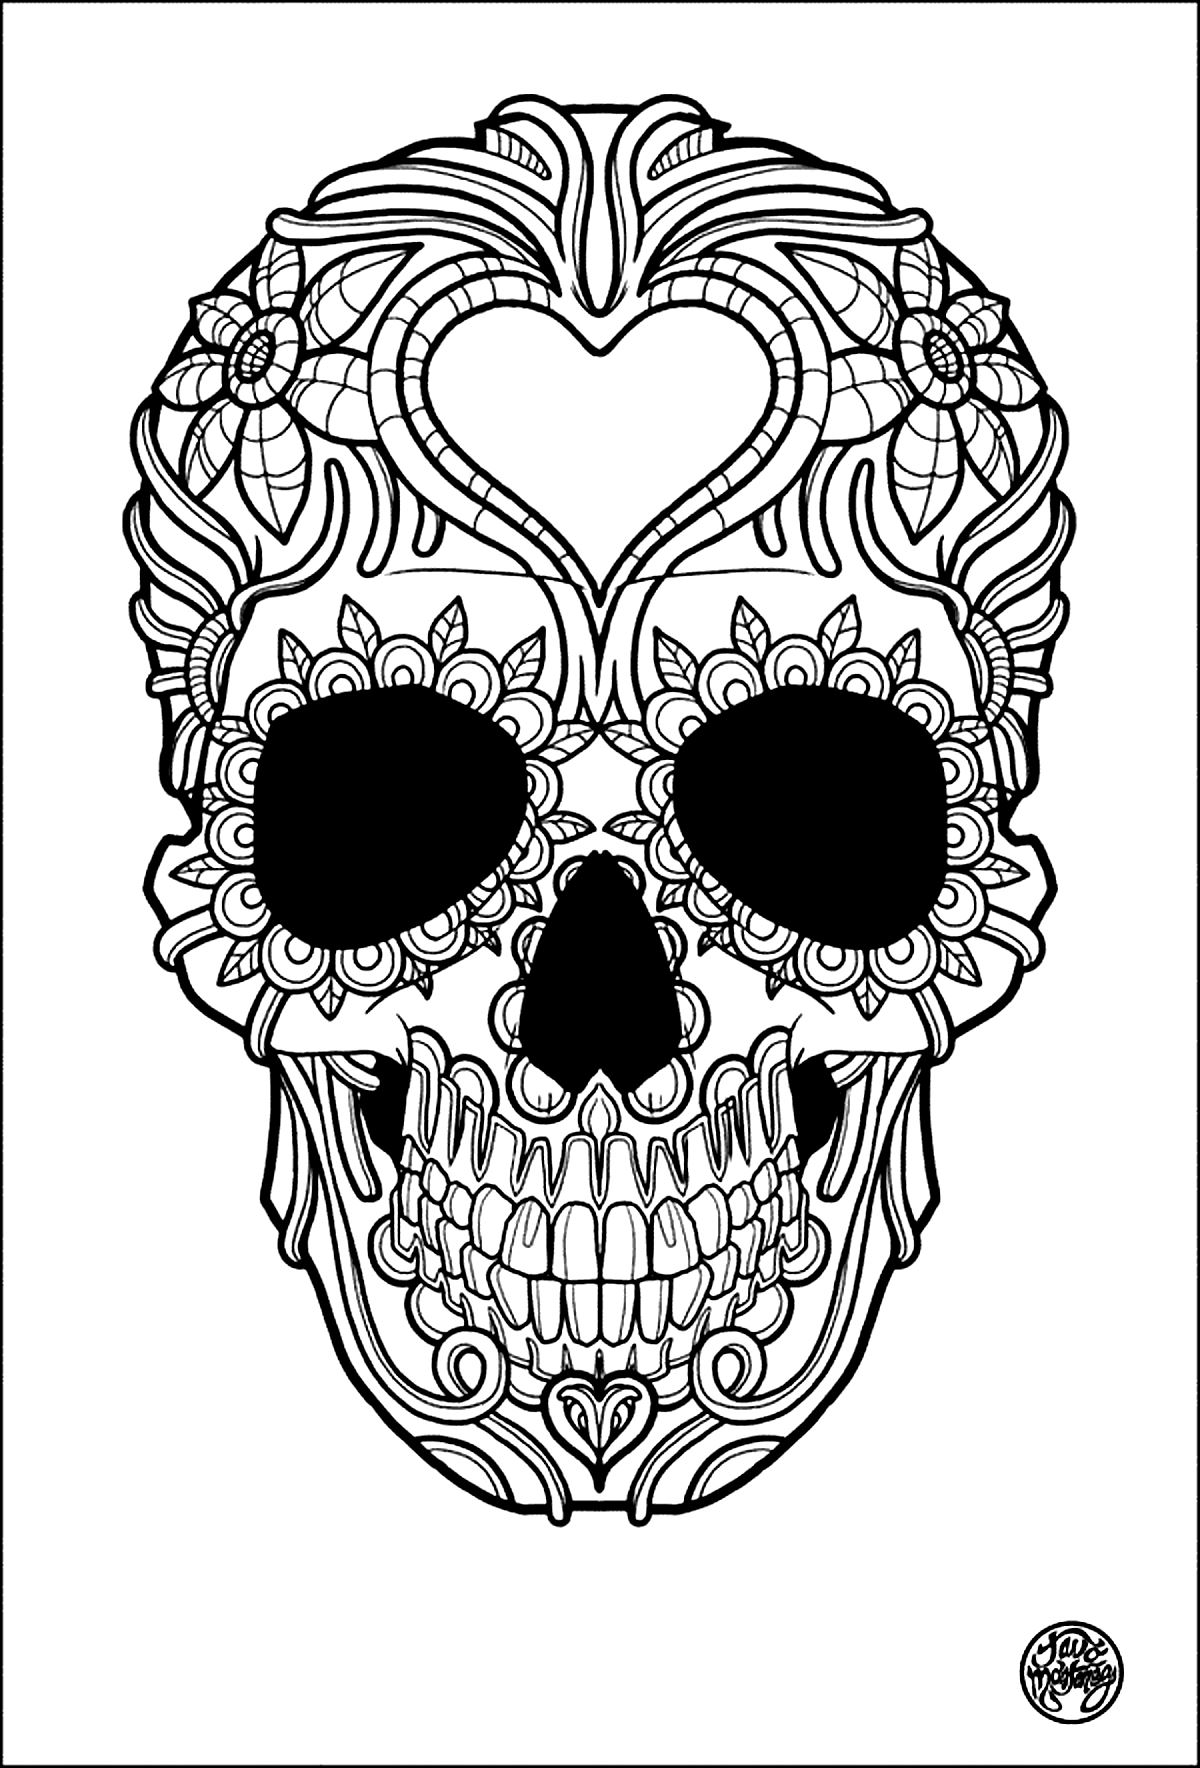 Colouring in for adults why - 19 Of The Best Adult Colouring Pages Free Printables For Everyone